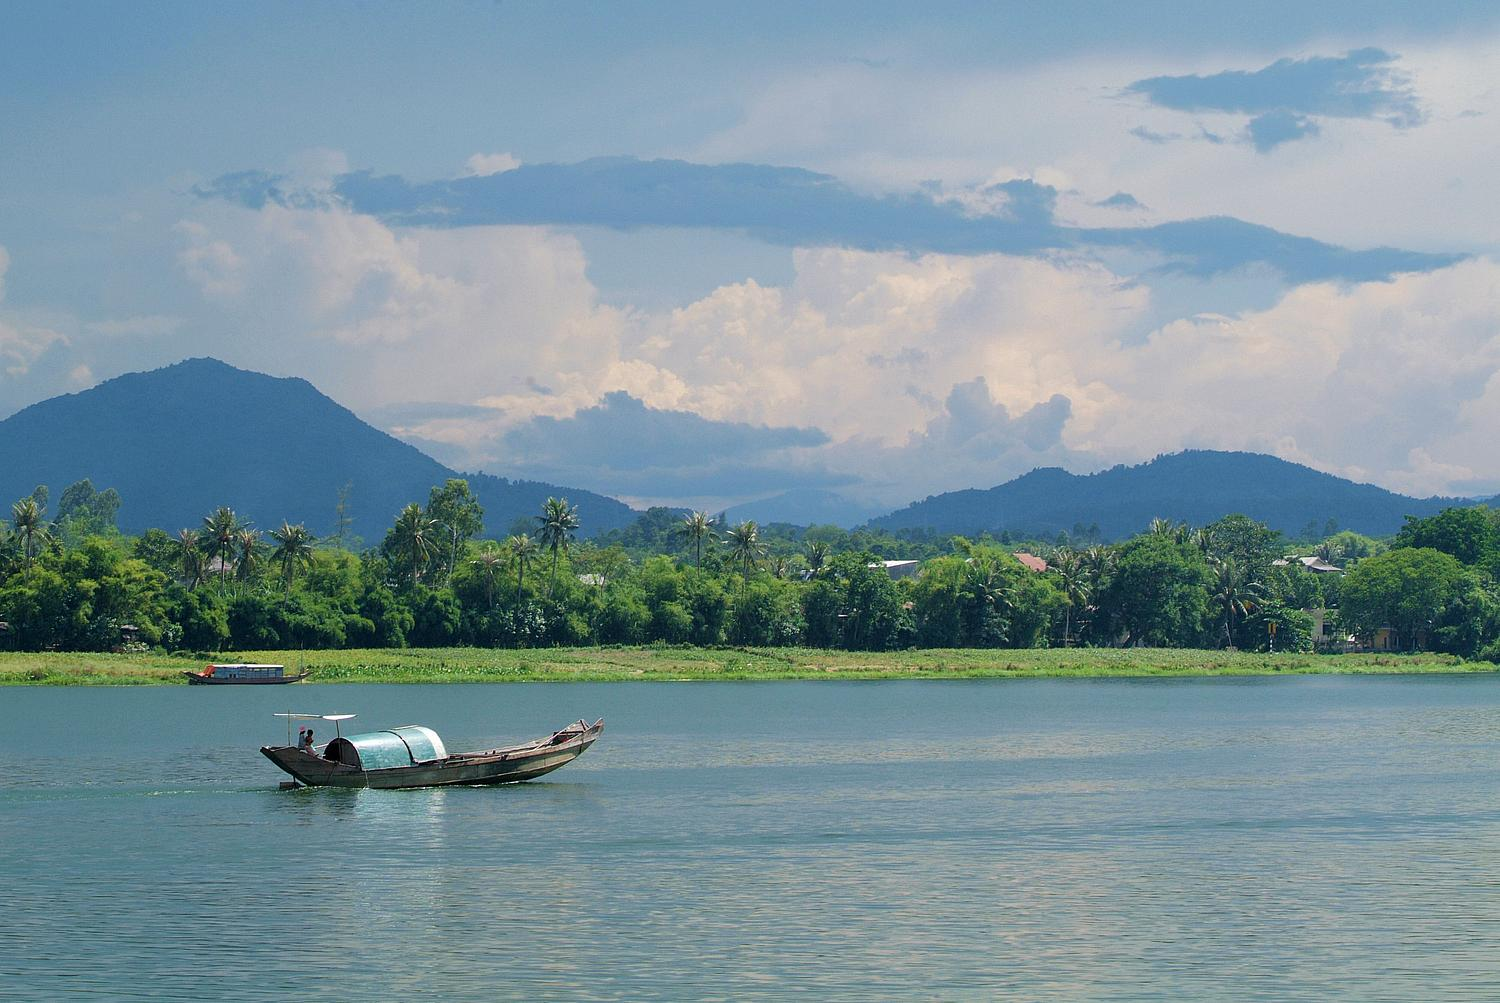 Boat on the Perfume River near Hue in Vietnam